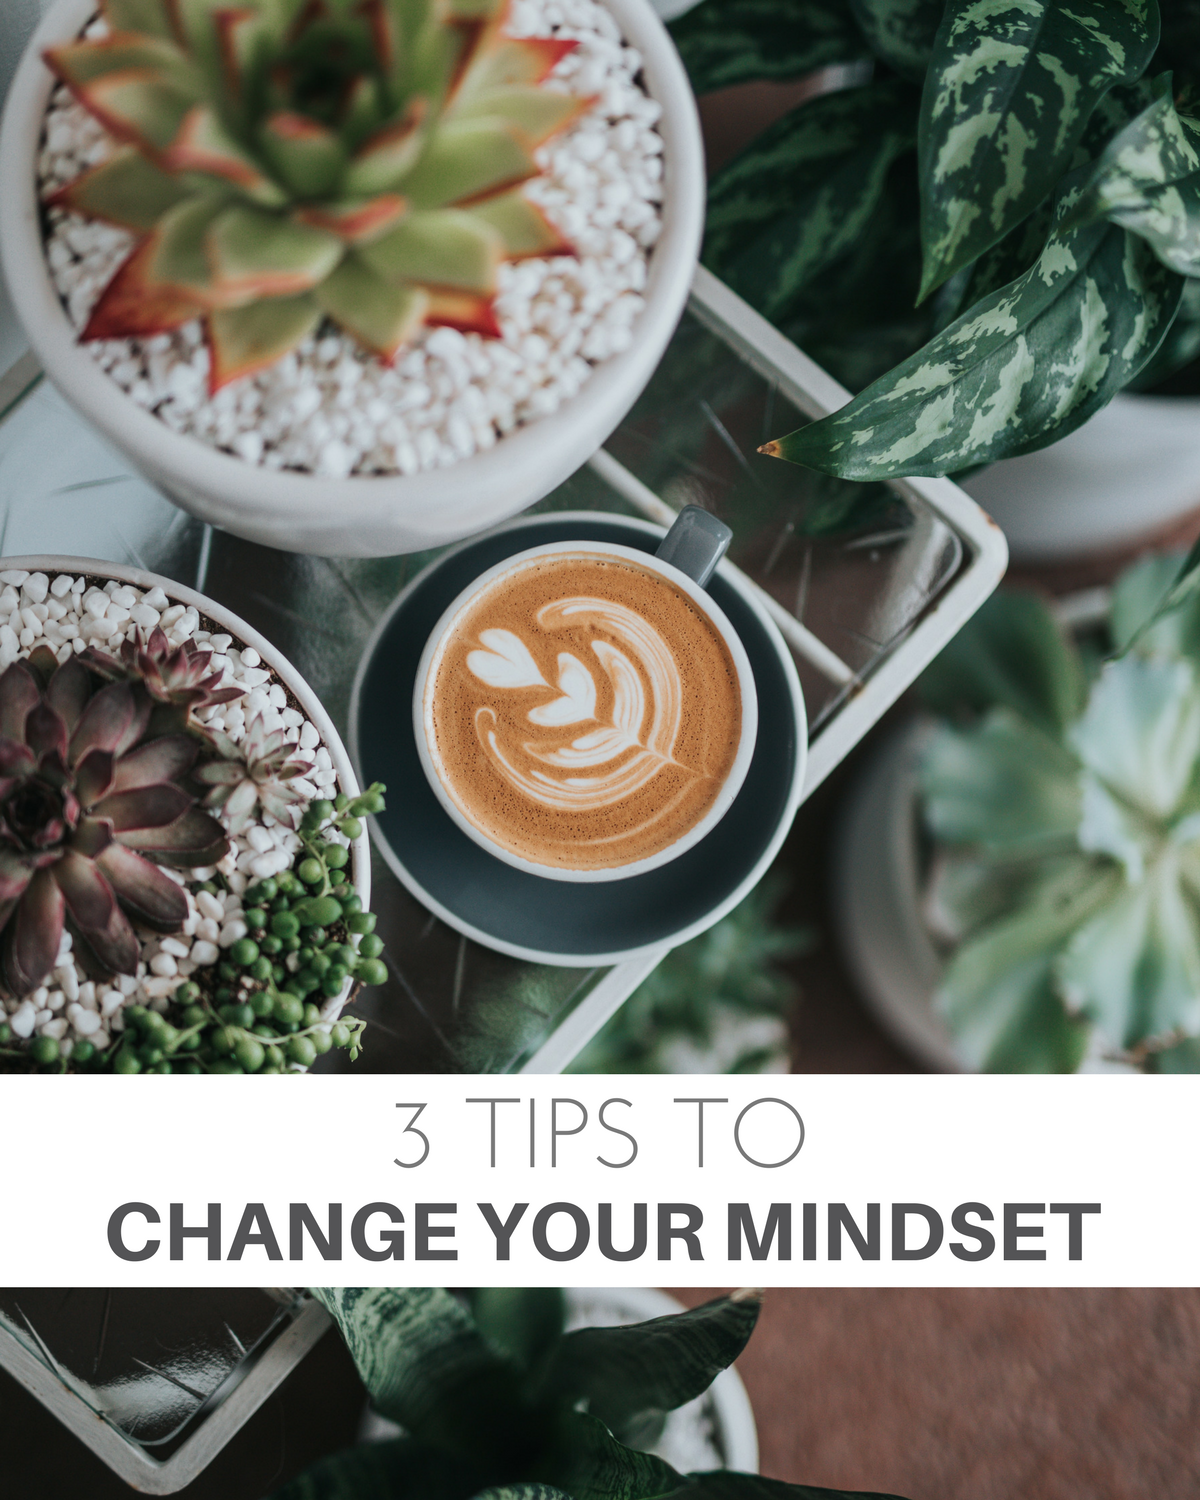 3 Tips to Change Your Mindset